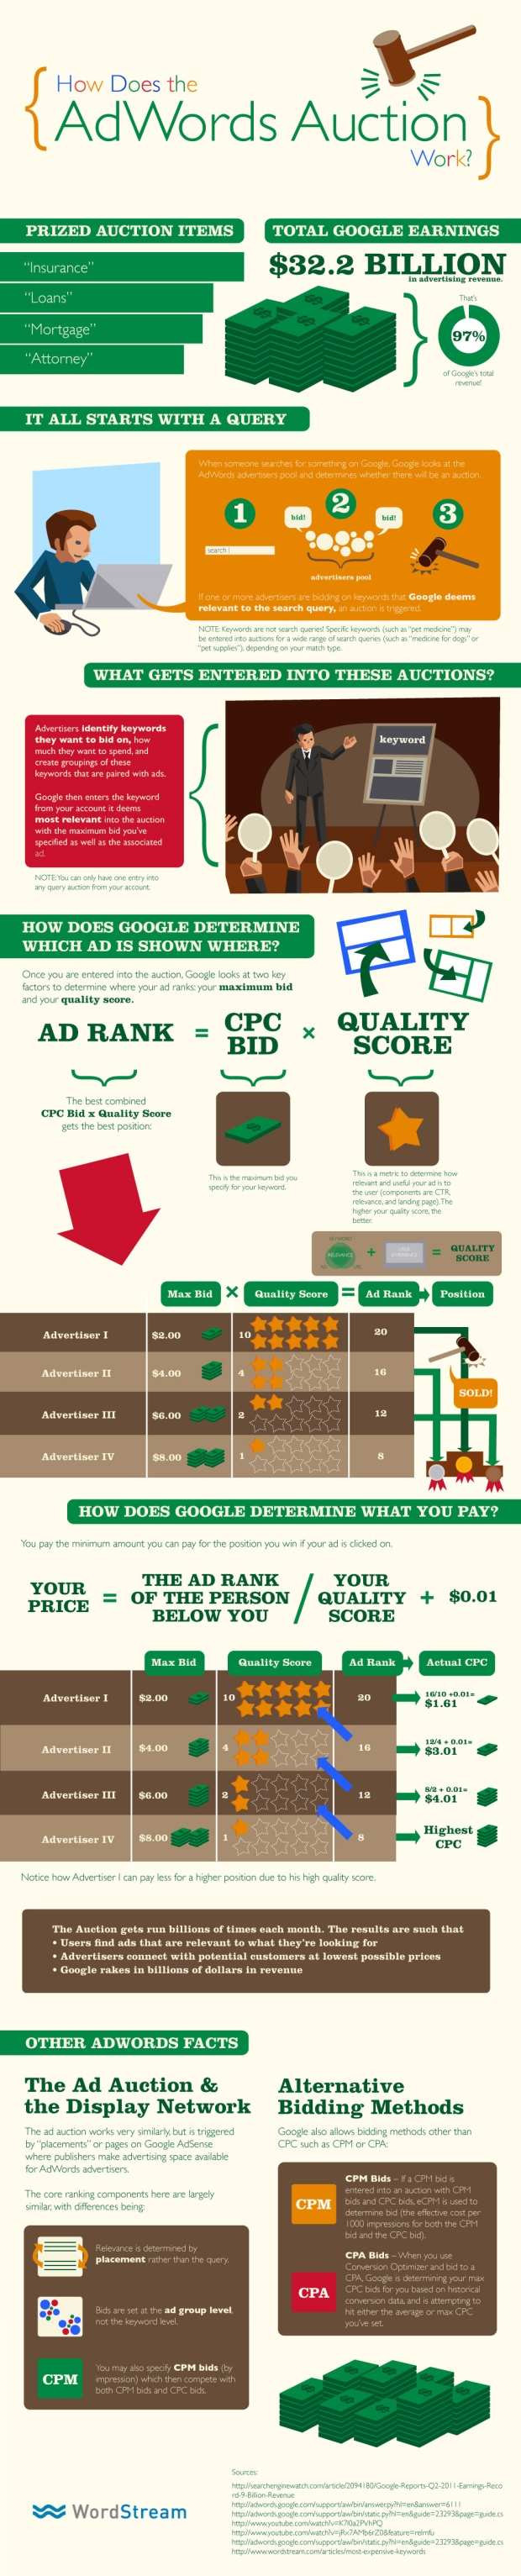 adwords explained infographic